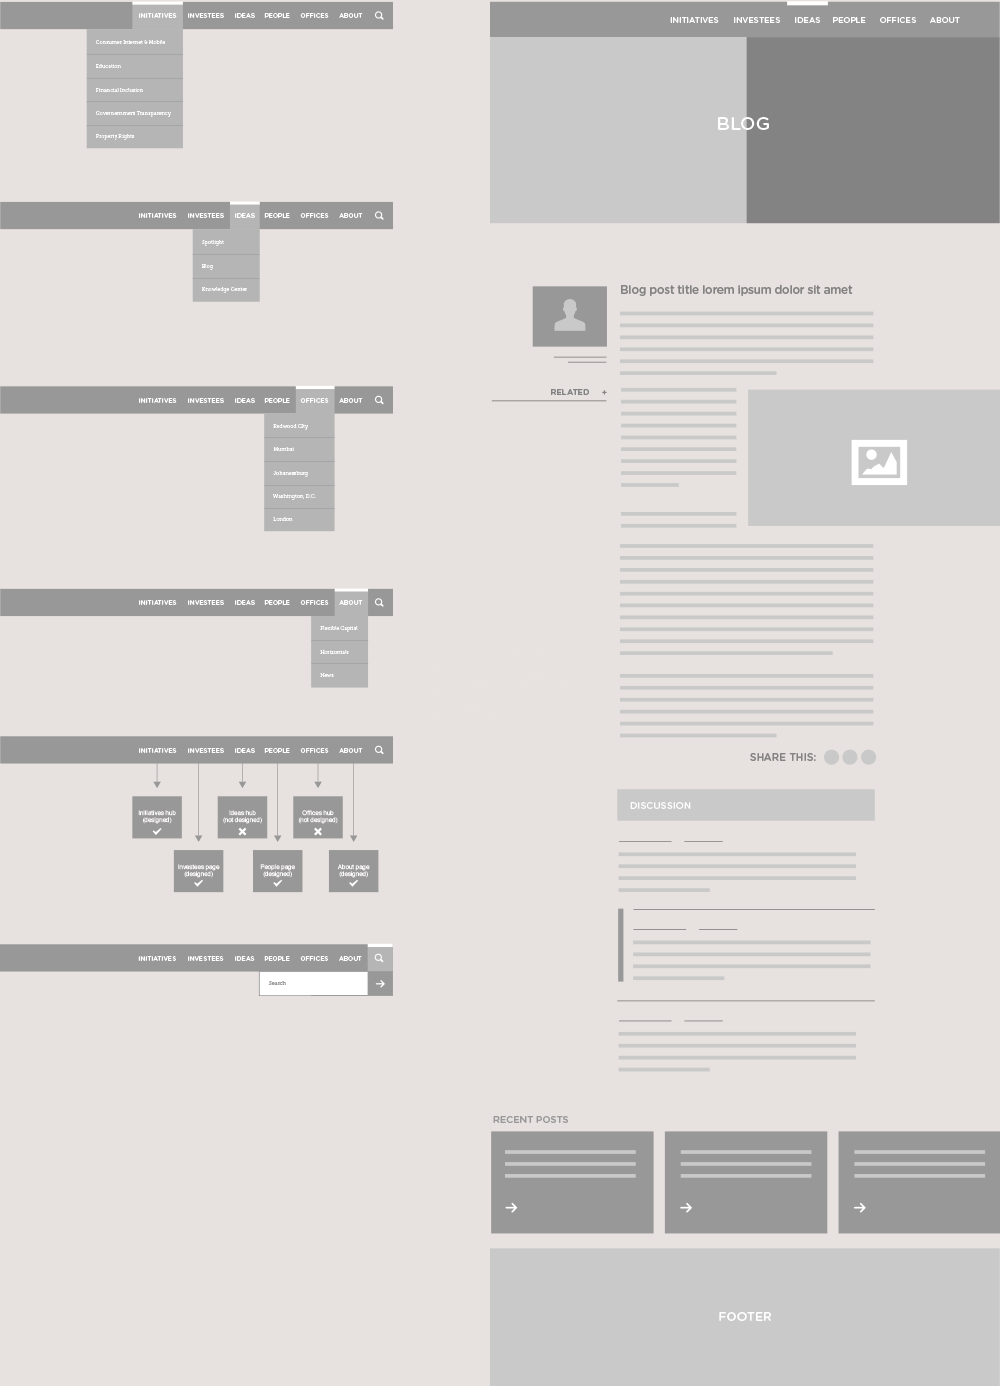 Early wireframes for information architecture and page layout